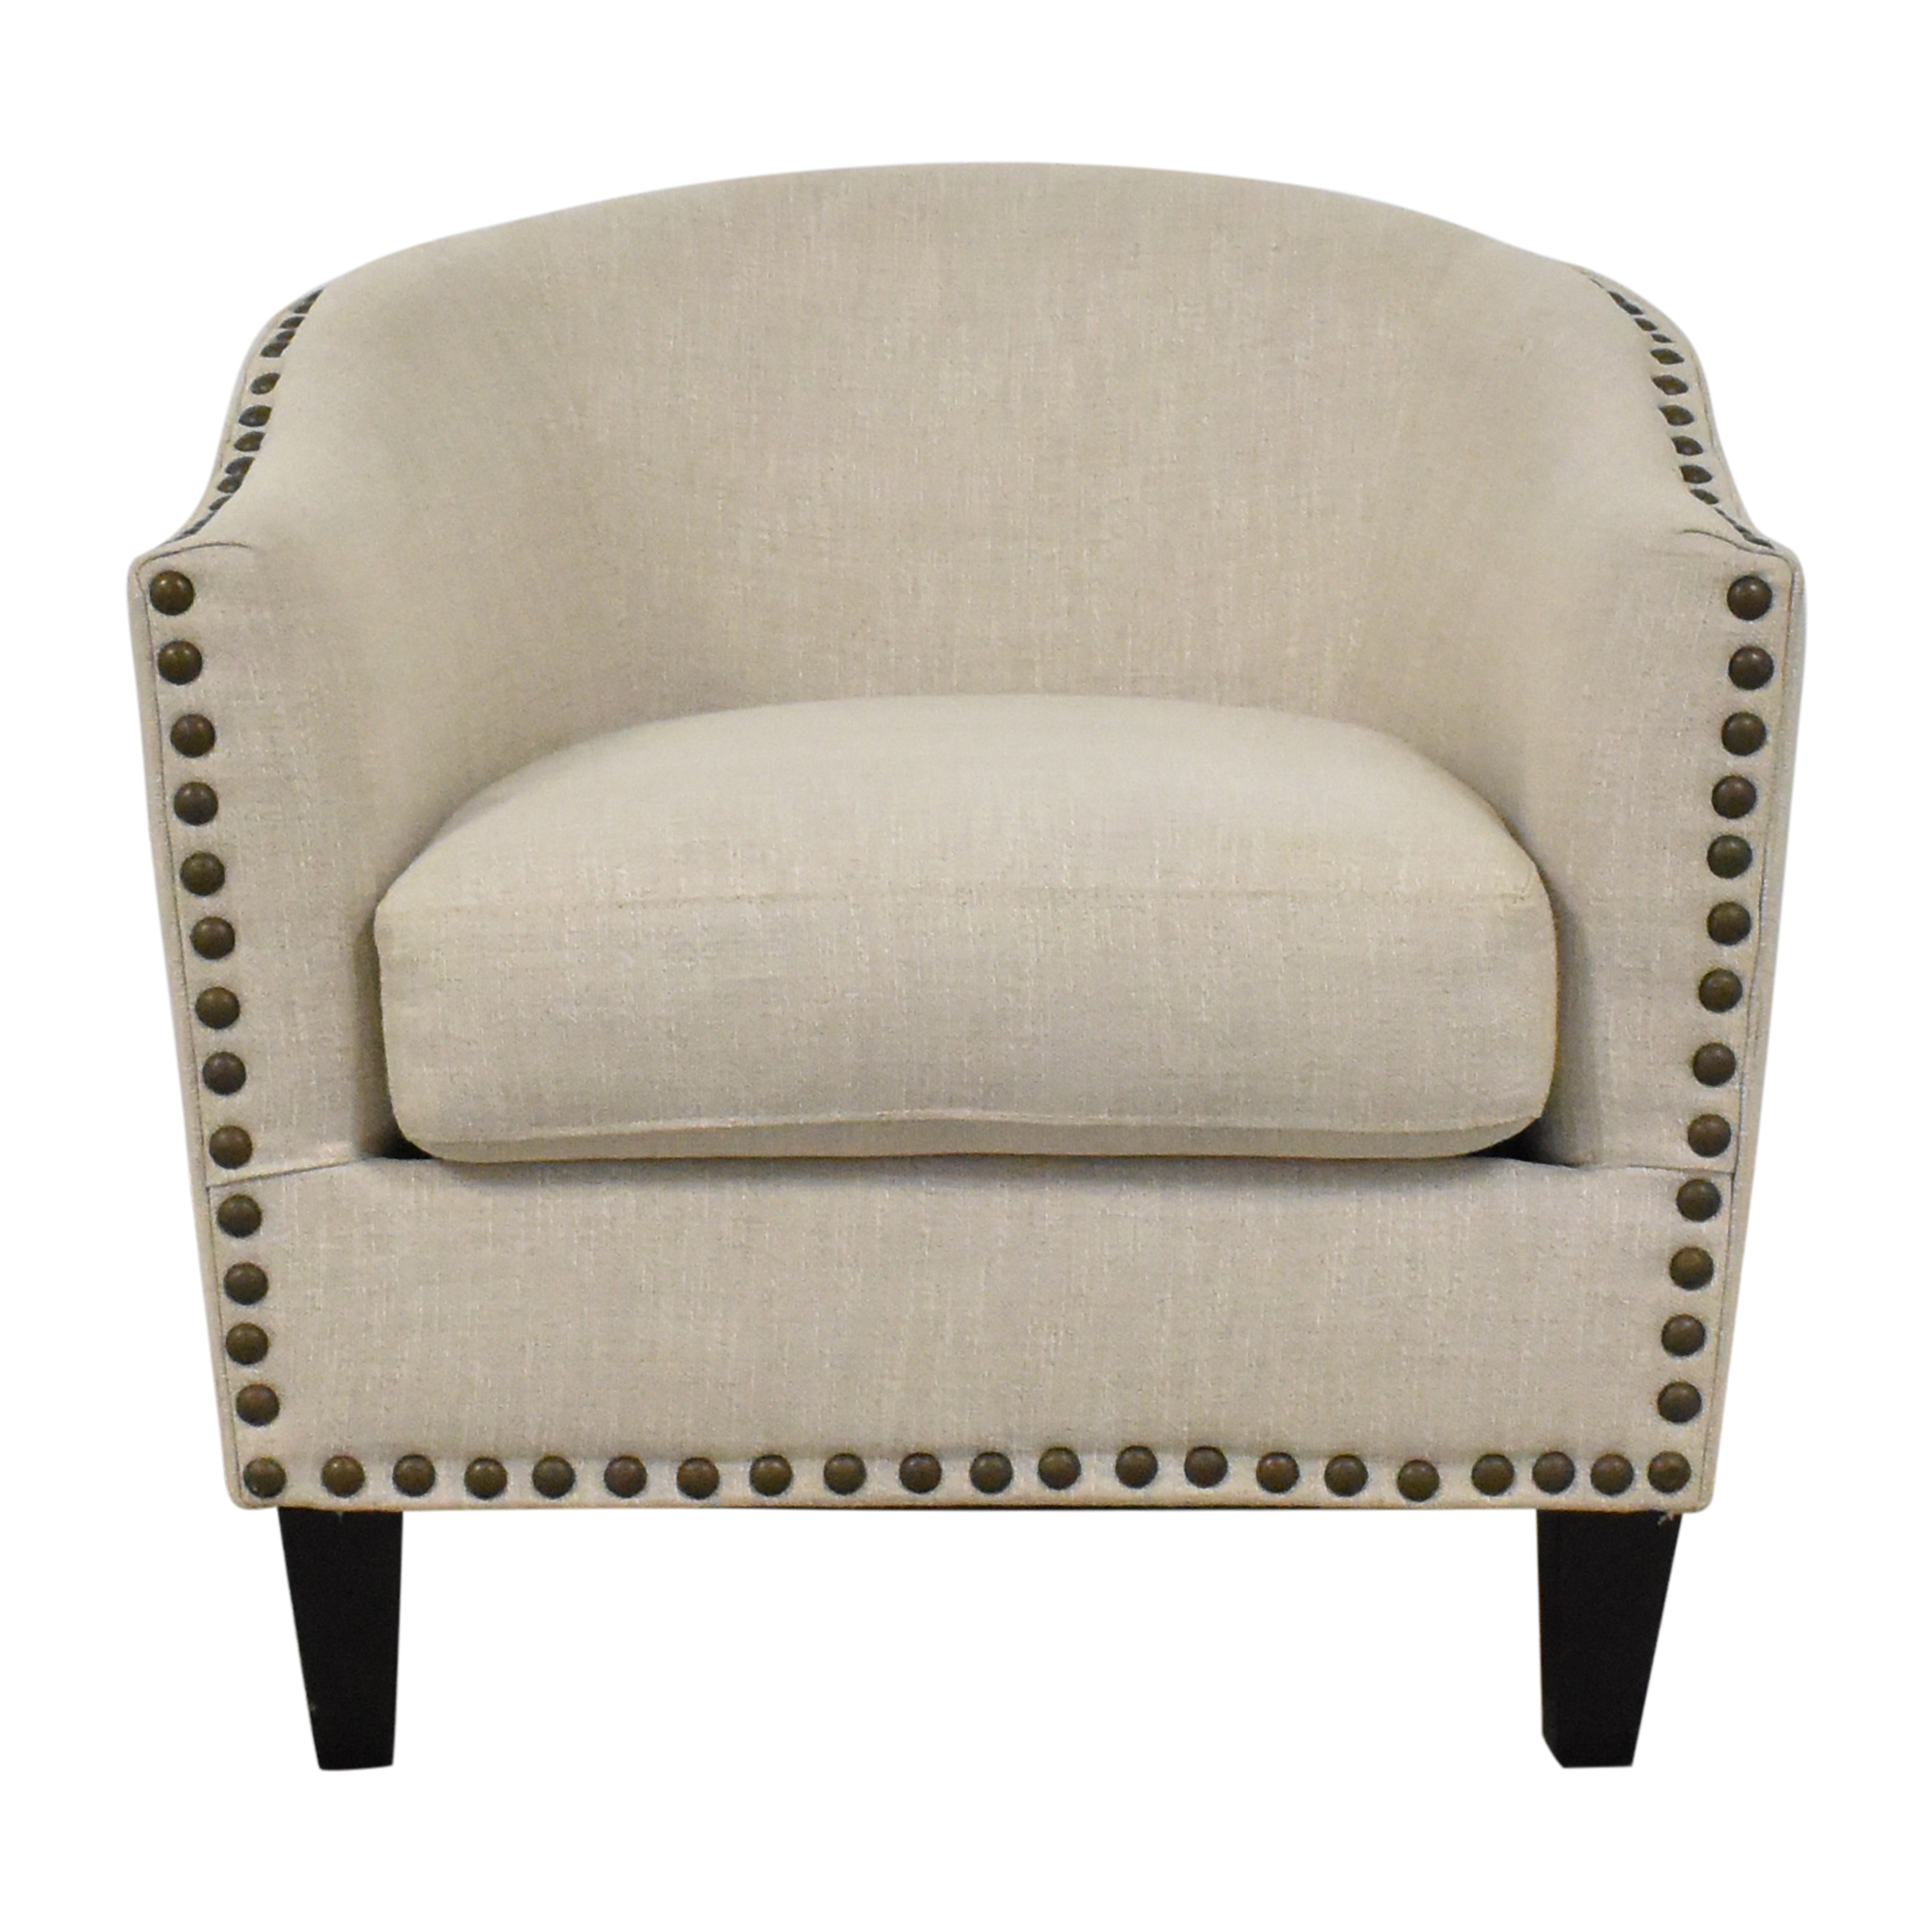 Pottery Barn Harlow Upholstered Armchair / Accent Chairs